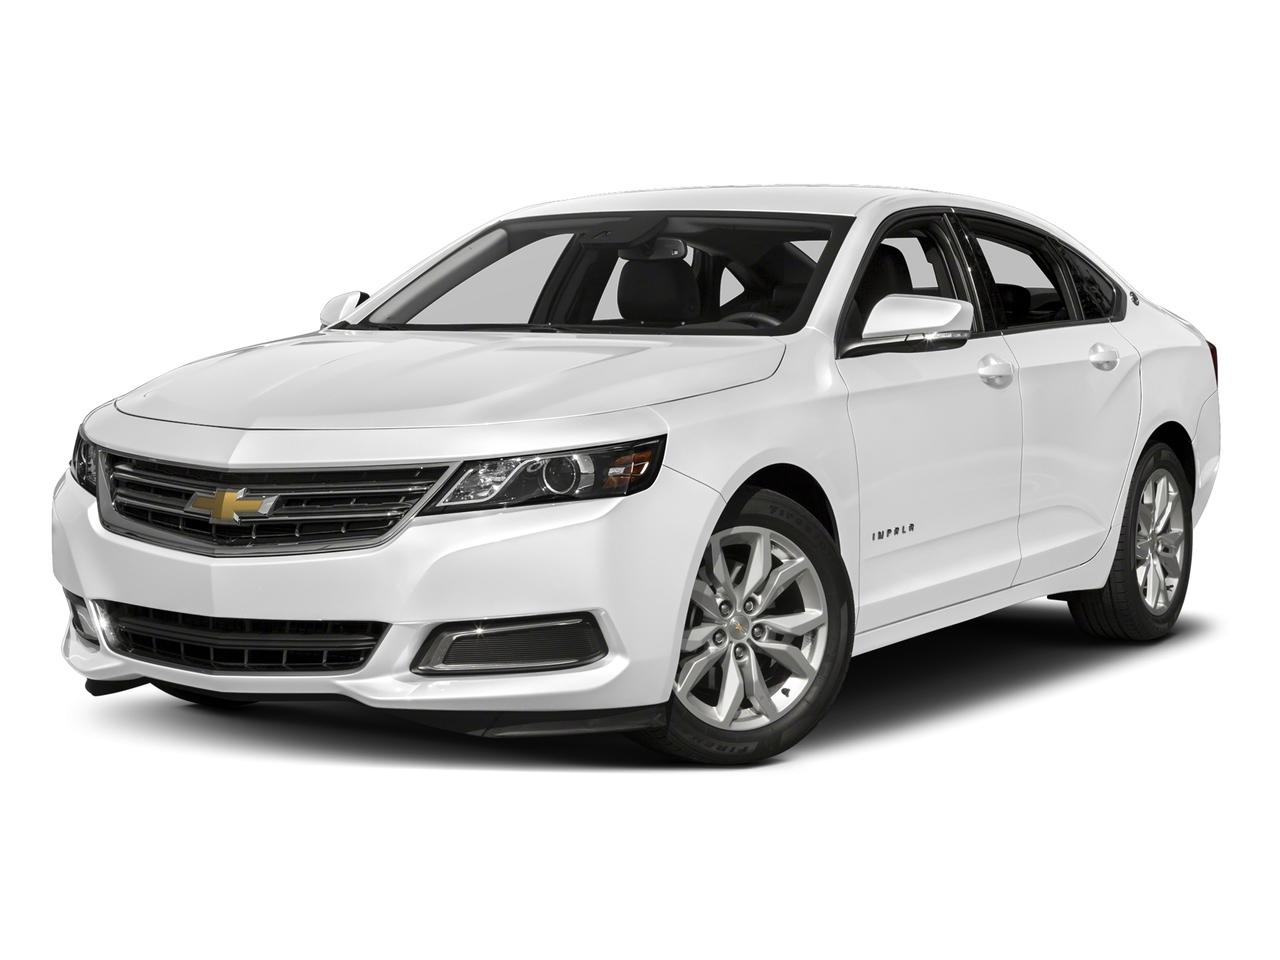 2018 Chevrolet Impala Vehicle Photo in Shreveport, LA 71105